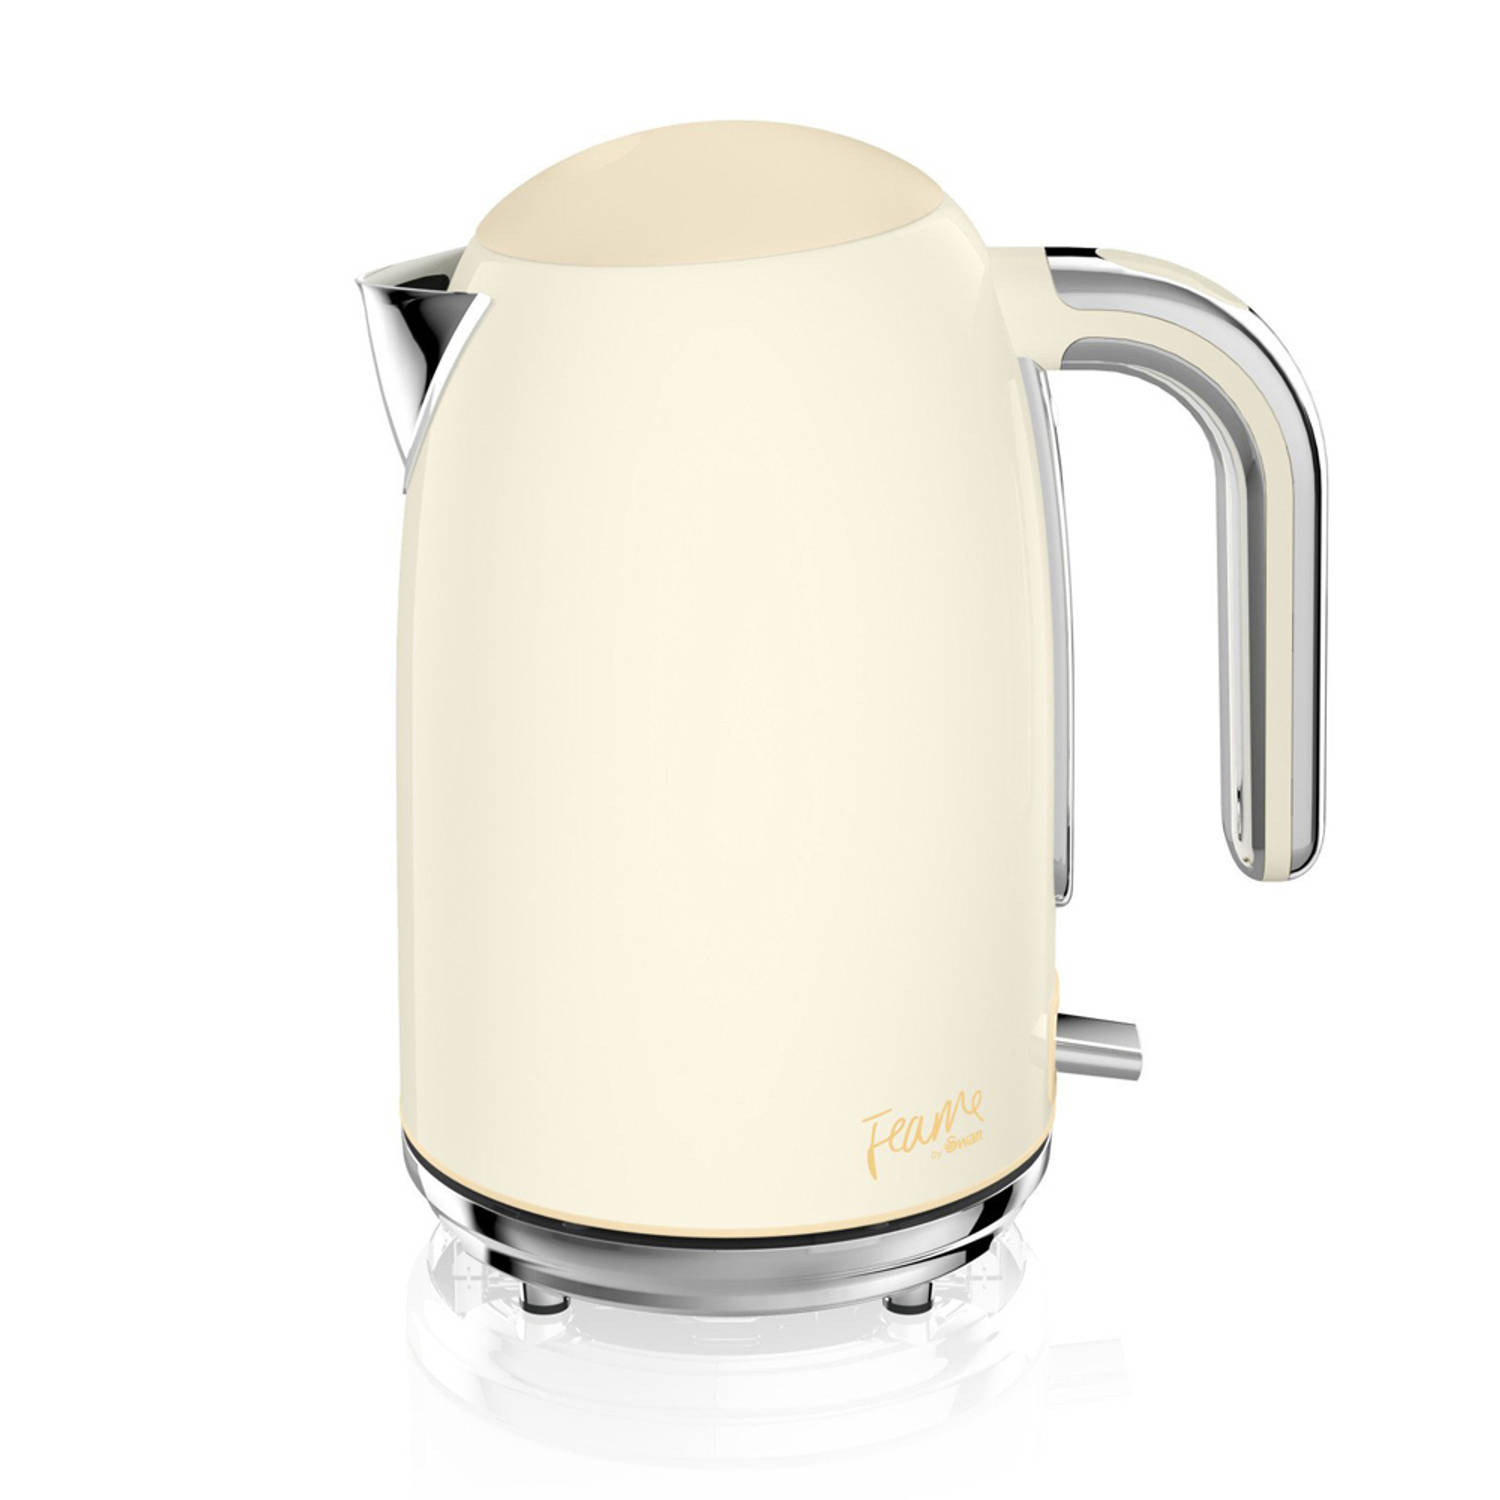 Fearne By Swan 1.7 Liter Retro Waterkoker Pale Honey